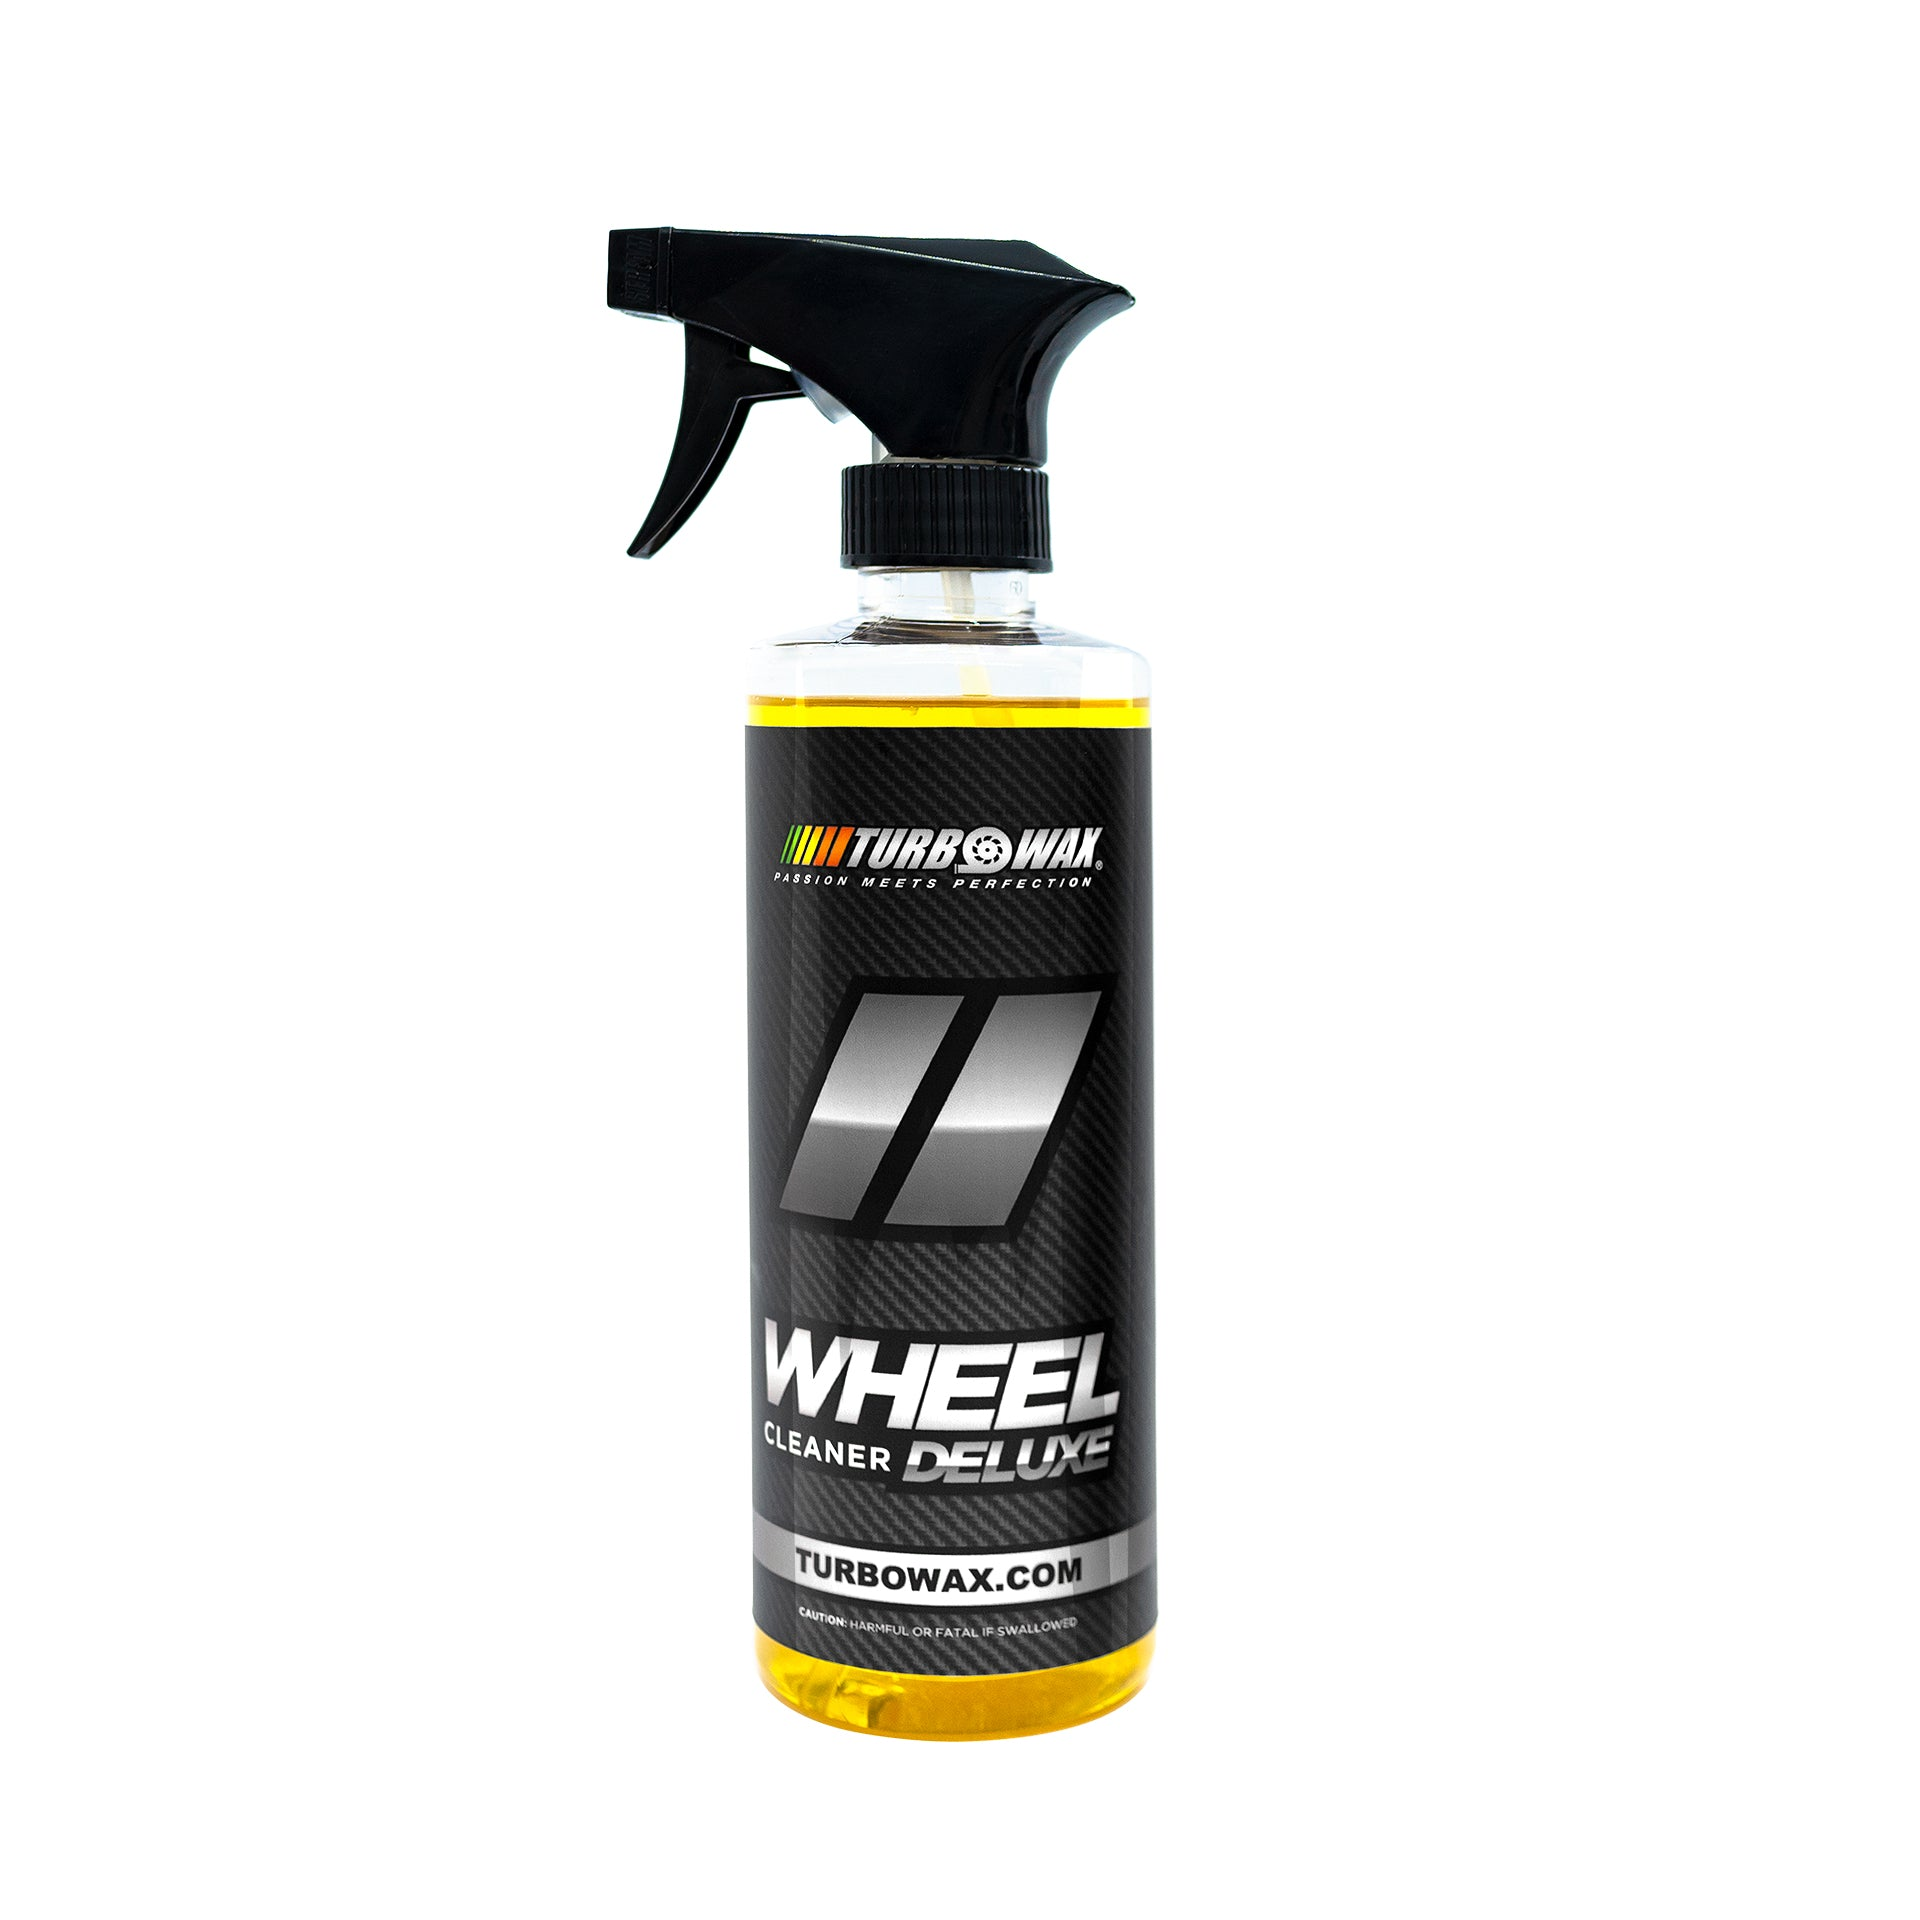 Turbo Wax Wheel Cleaner Deluxe